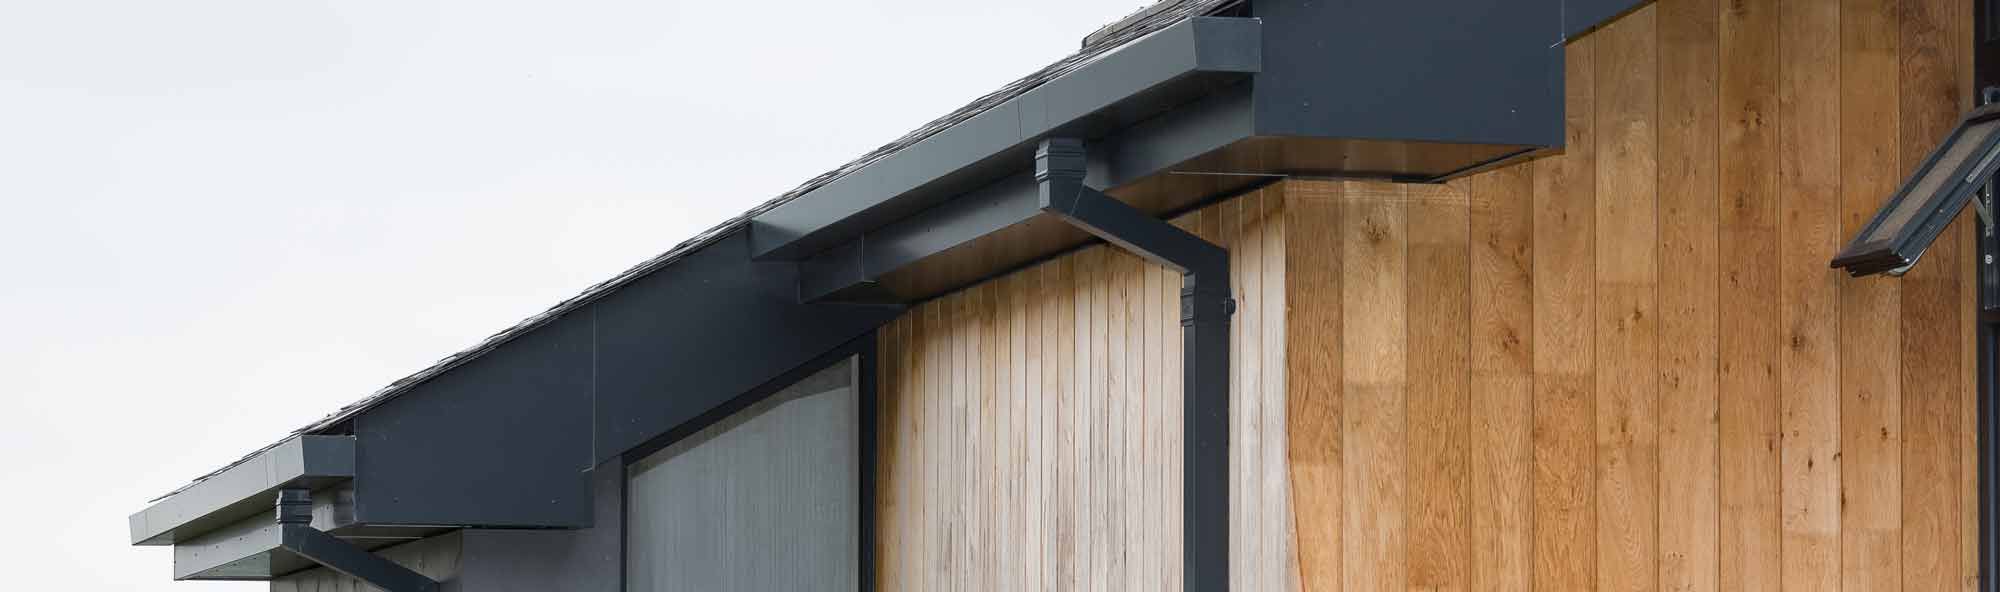 Aluminium Guttering Amp Rainwater Systems From Marley Alutec